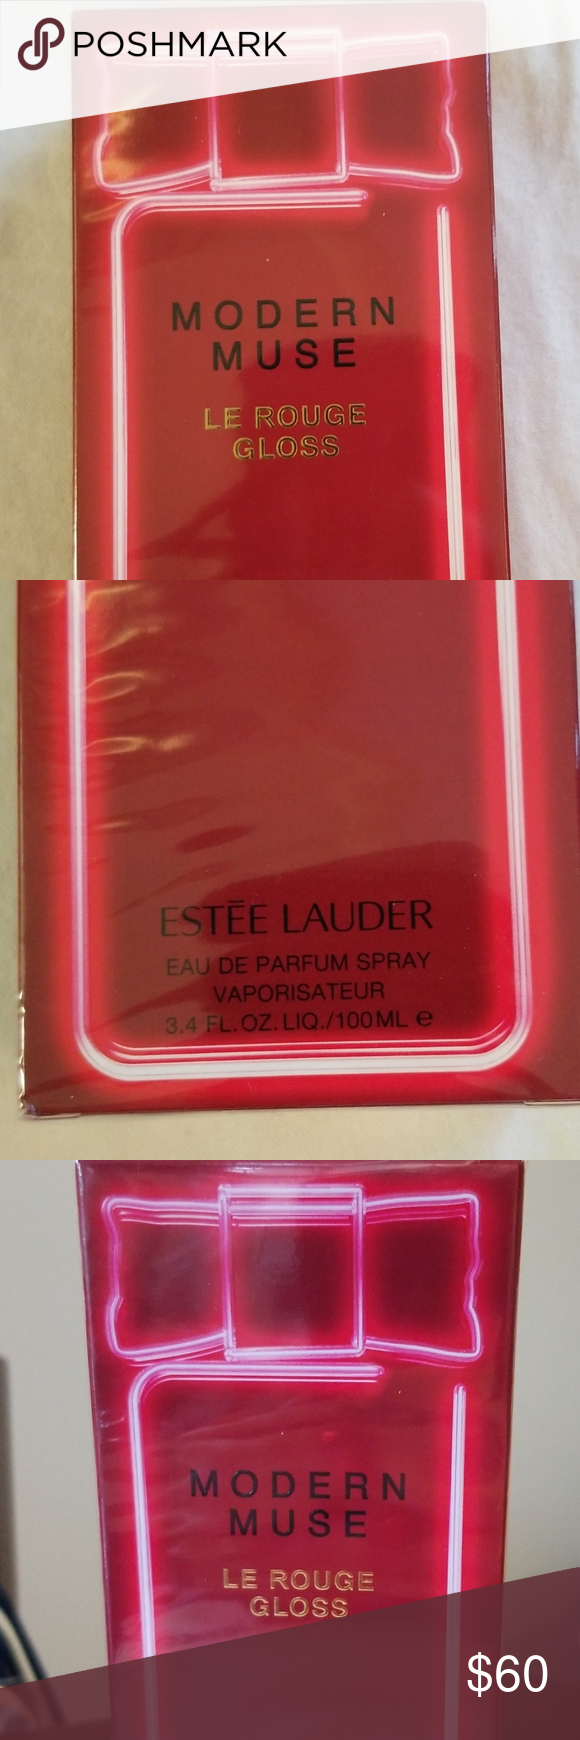 Estee Lauder Modern Muse Le Rouge Gloss In 2020 Estee Lauder Modern Muse Modern Muse Le Rouge Gloss Modern Muse